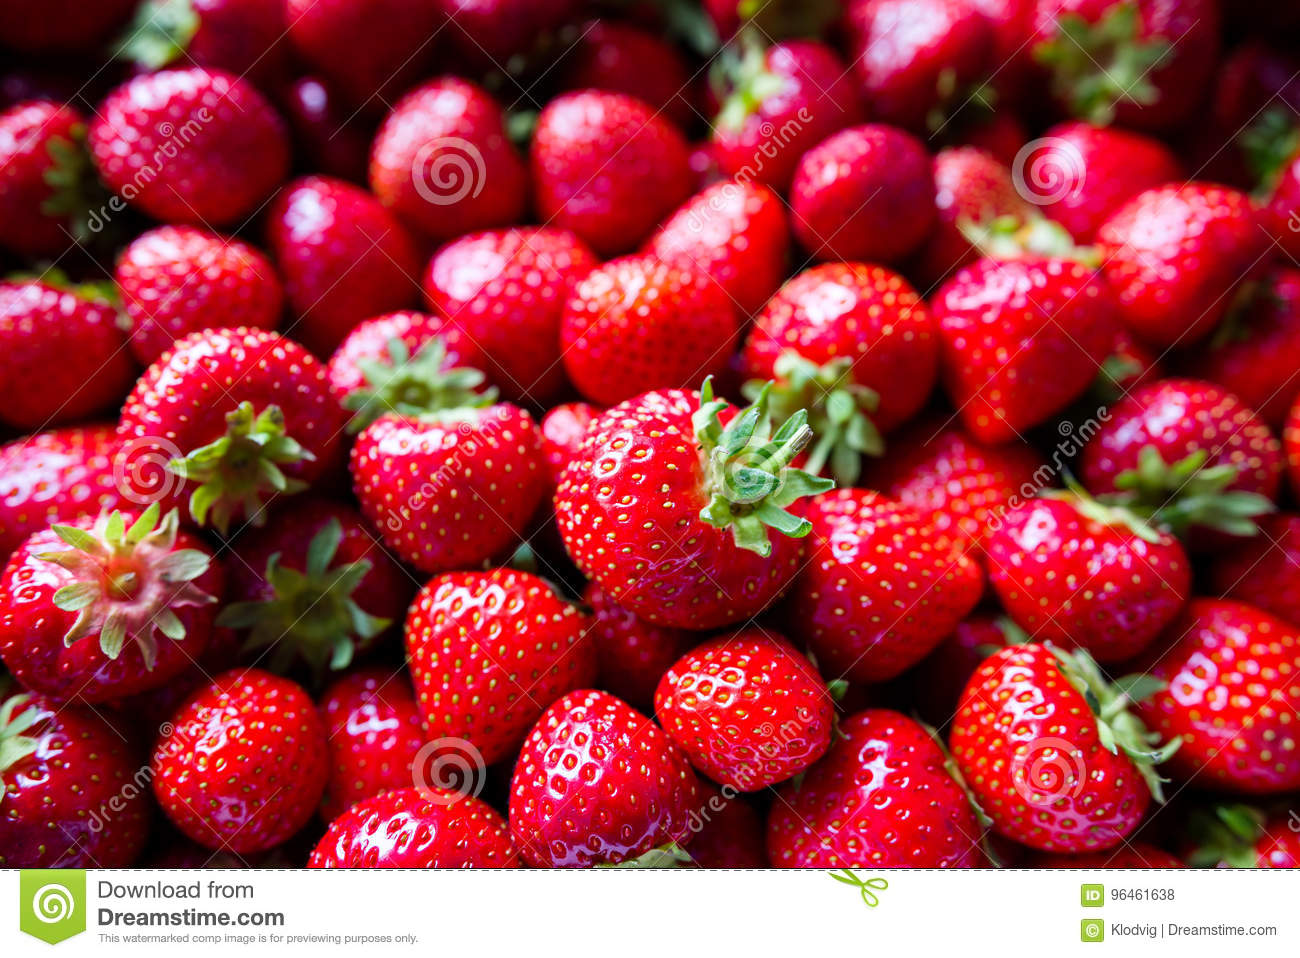 Download Ripe red strawberries stock photo. Image of cooking, ingredient - 96461638